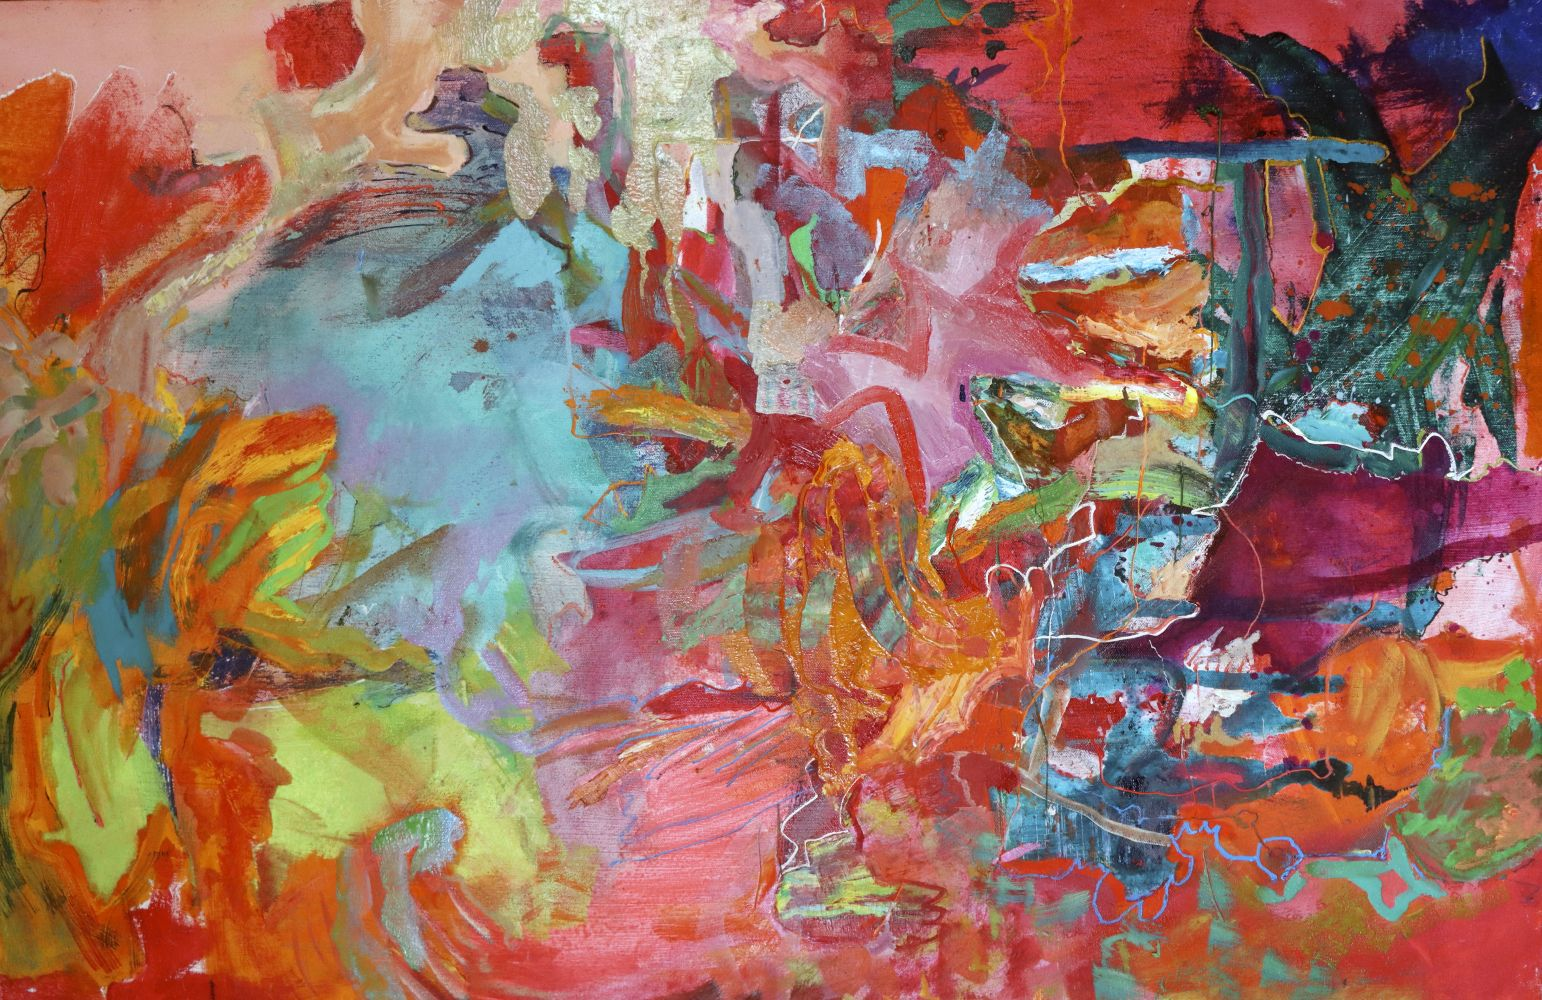 "Artist Benjamin Passione, 24.5"" by 38"", Oil On Canvas, Titled Abstraction In Red"